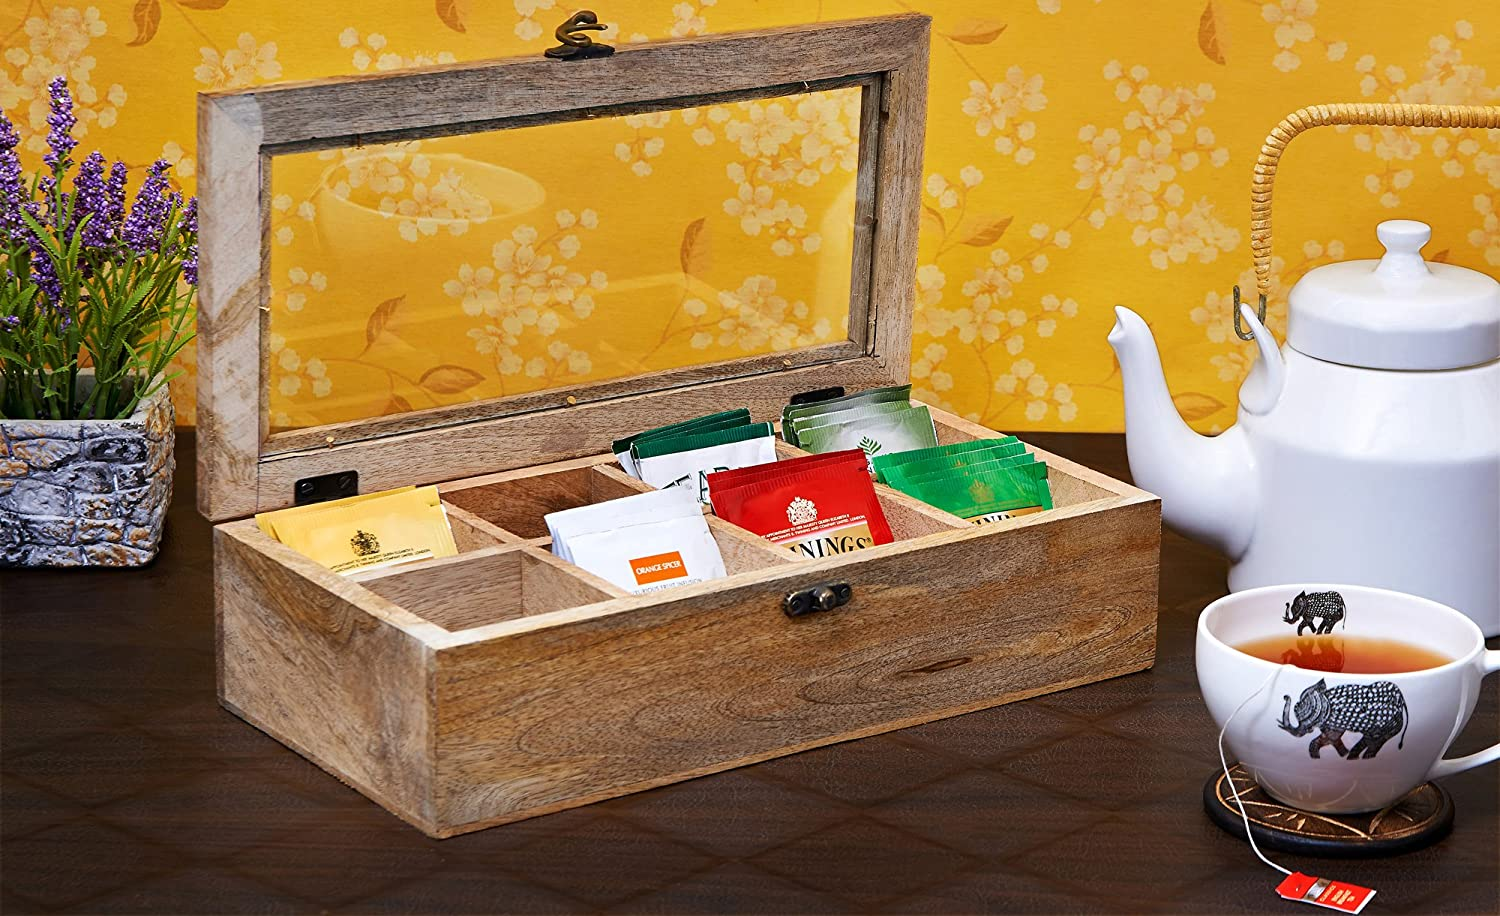 Wooden Tea Caddy Storage Chest Tea Box with Equally Divided Compartments - Rustic Finish Mango Wood Beautiful Gift on all Occasions (8 Compartments) Eximious India